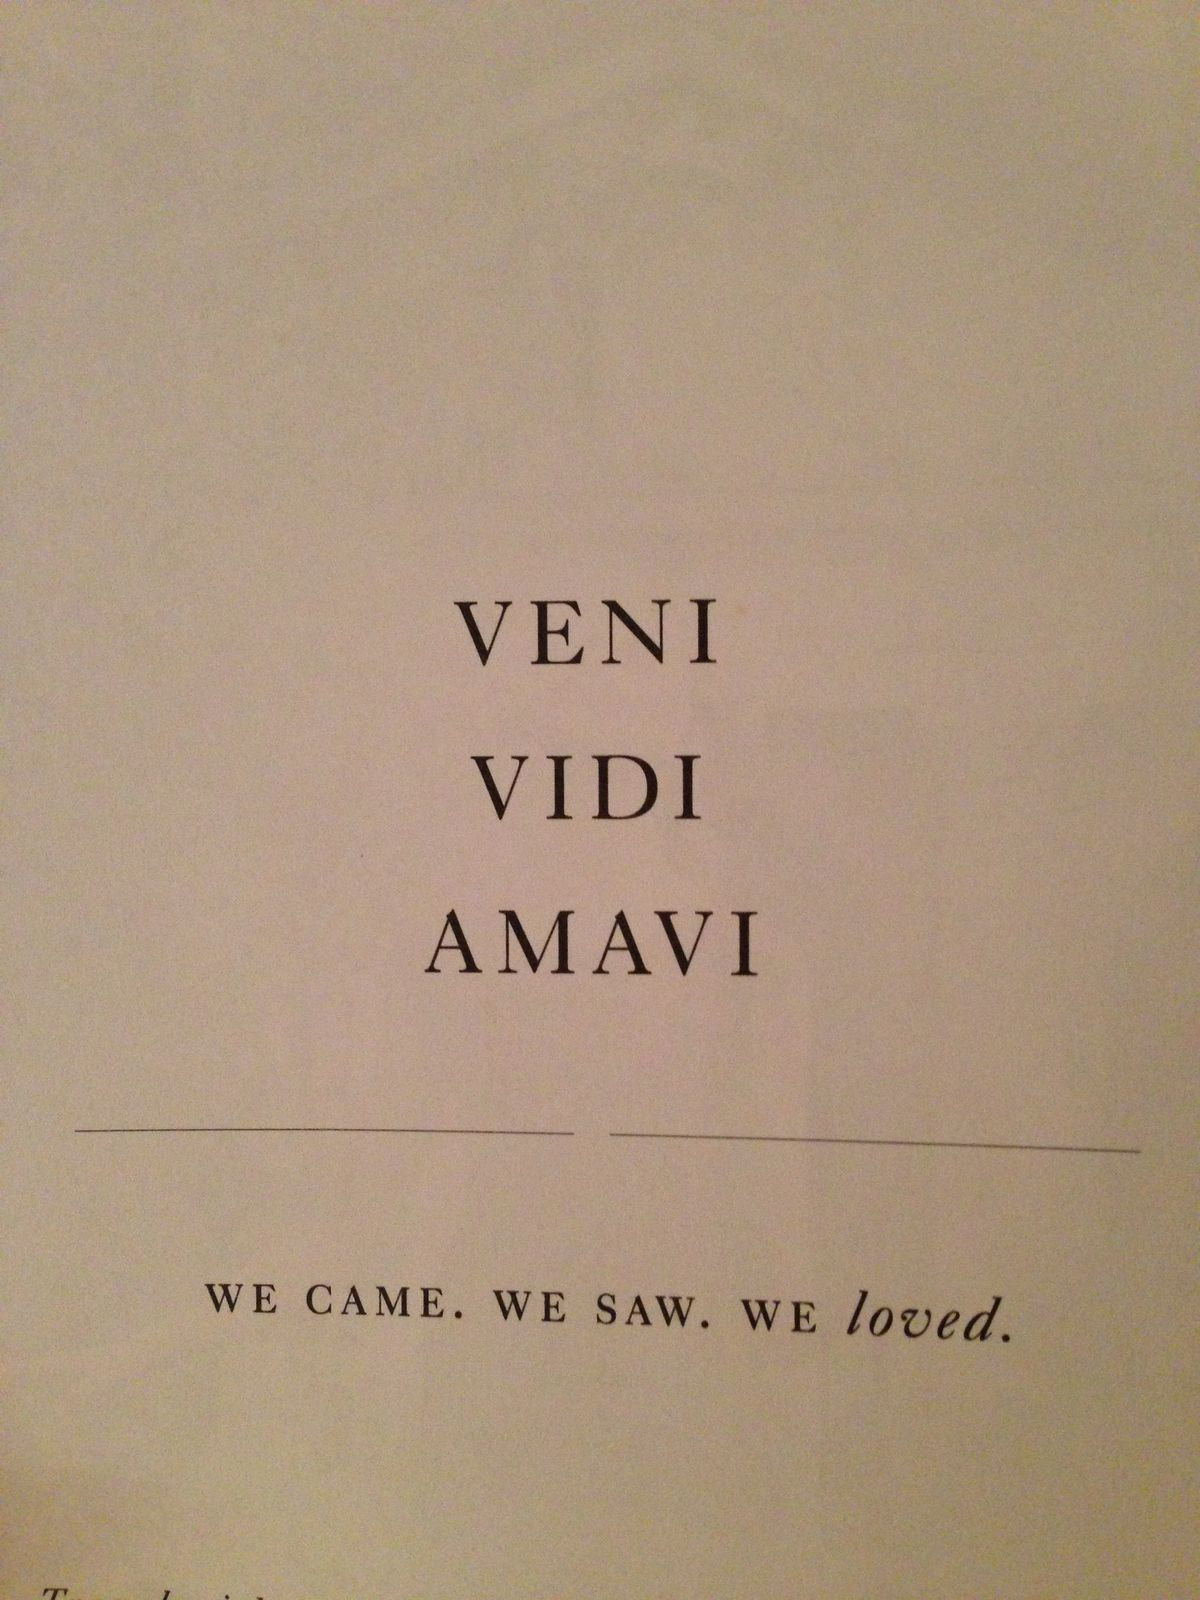 I Came I Saw I Loved Latin Motto Quote Tattoo Pinterest